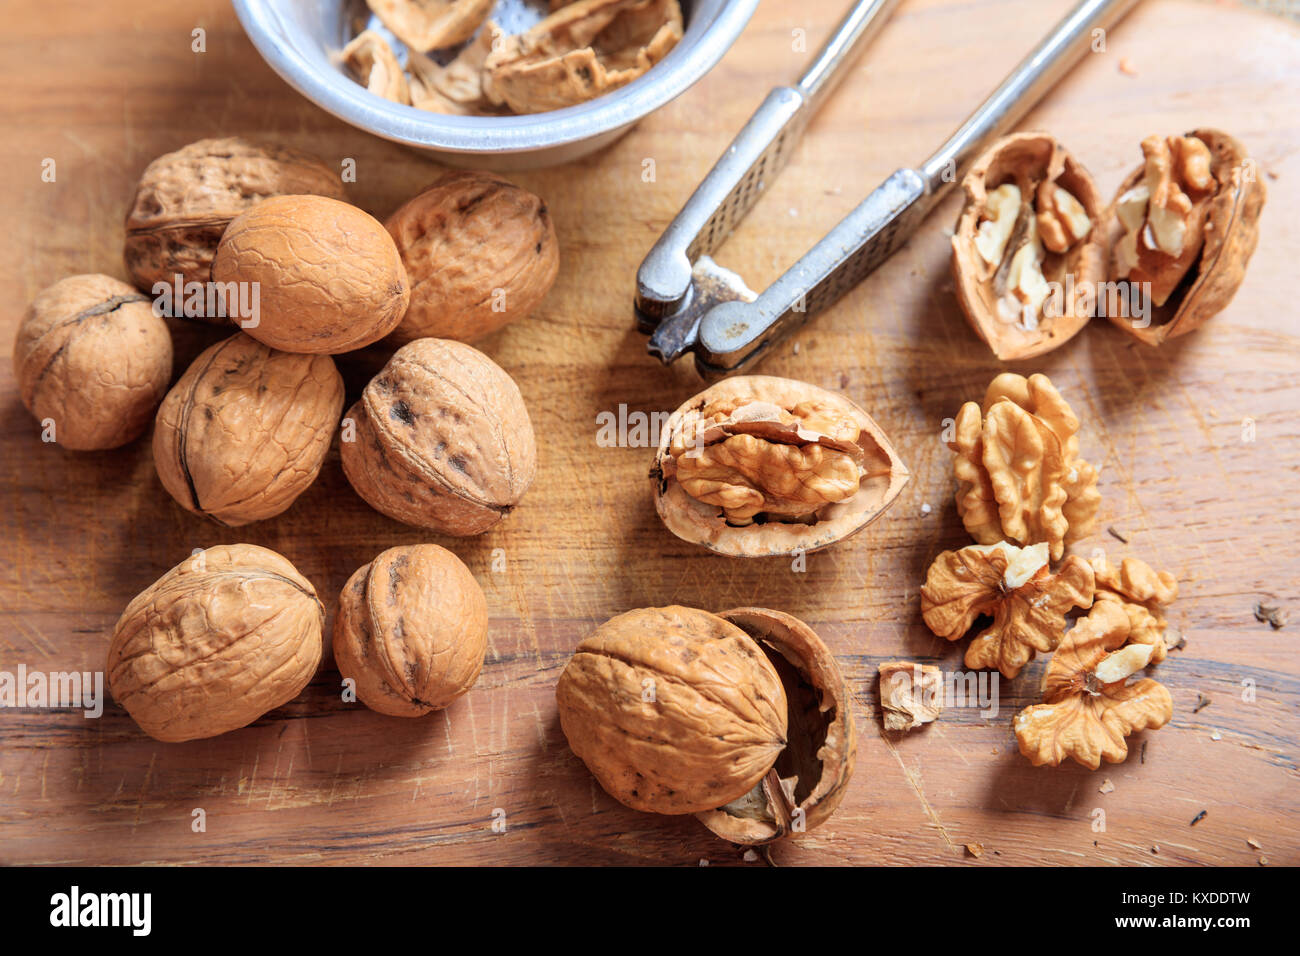 Walnuts and a nutcracker on a table - Stock Image